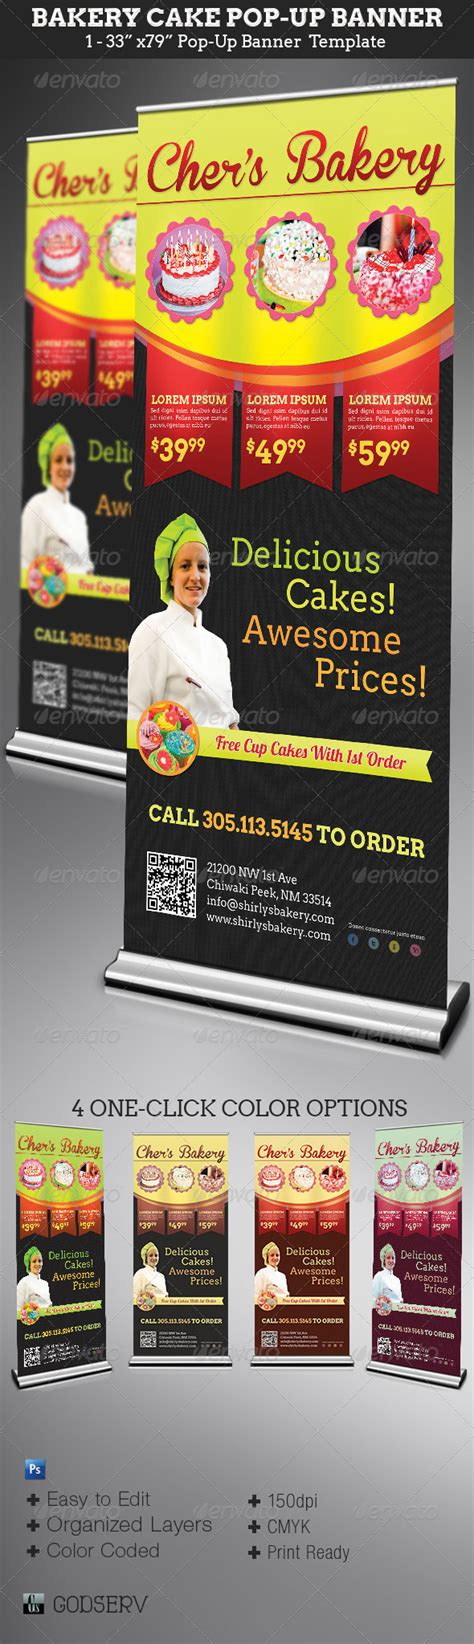 bakery cake pop up banner template graphicriver